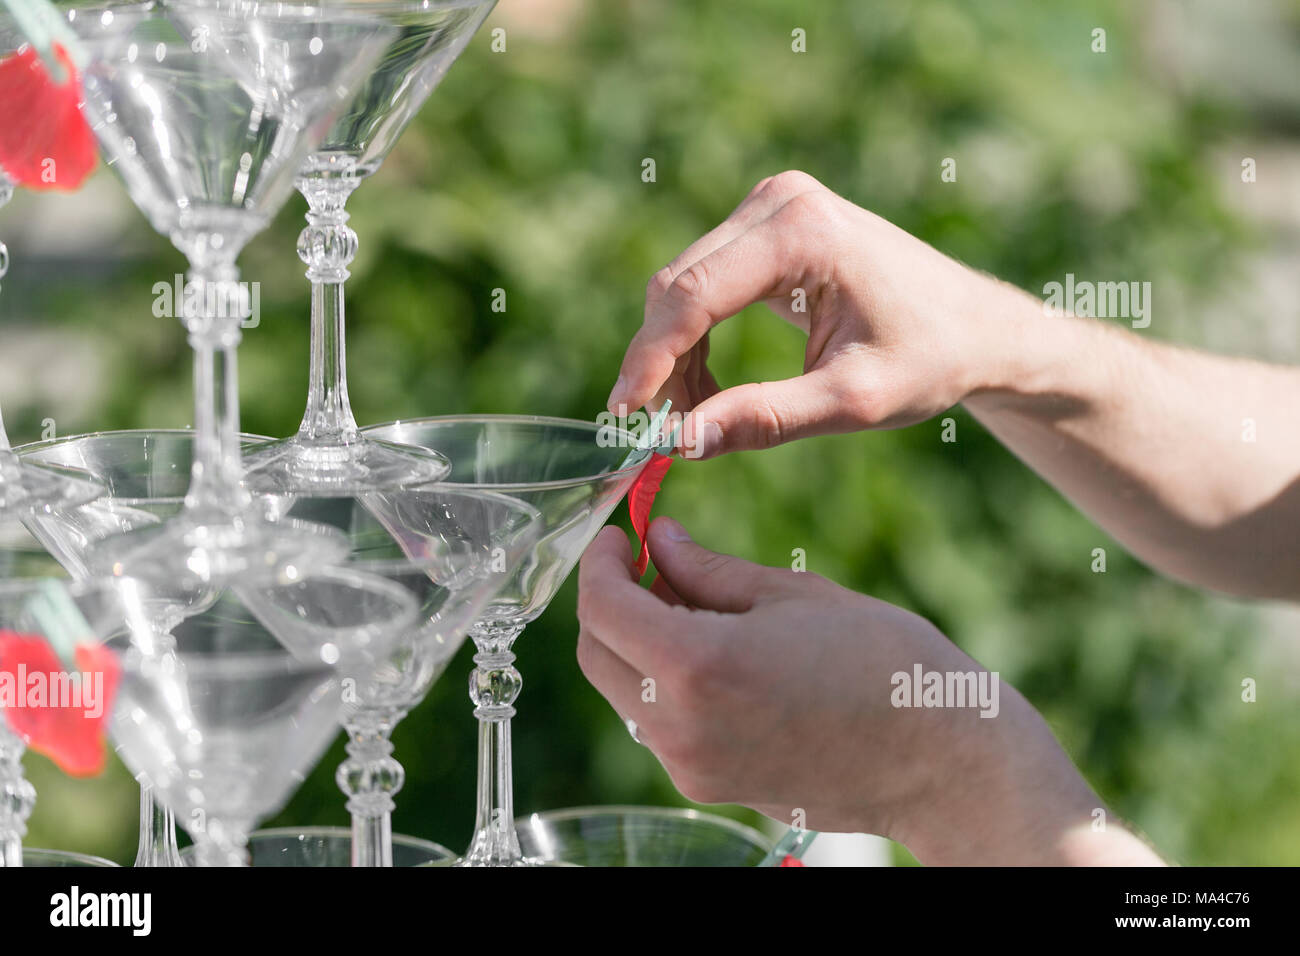 Hands of a waiter that makes out pyramid from glasses for drinks, wine, champagne, festive mood, celebration - Stock Image